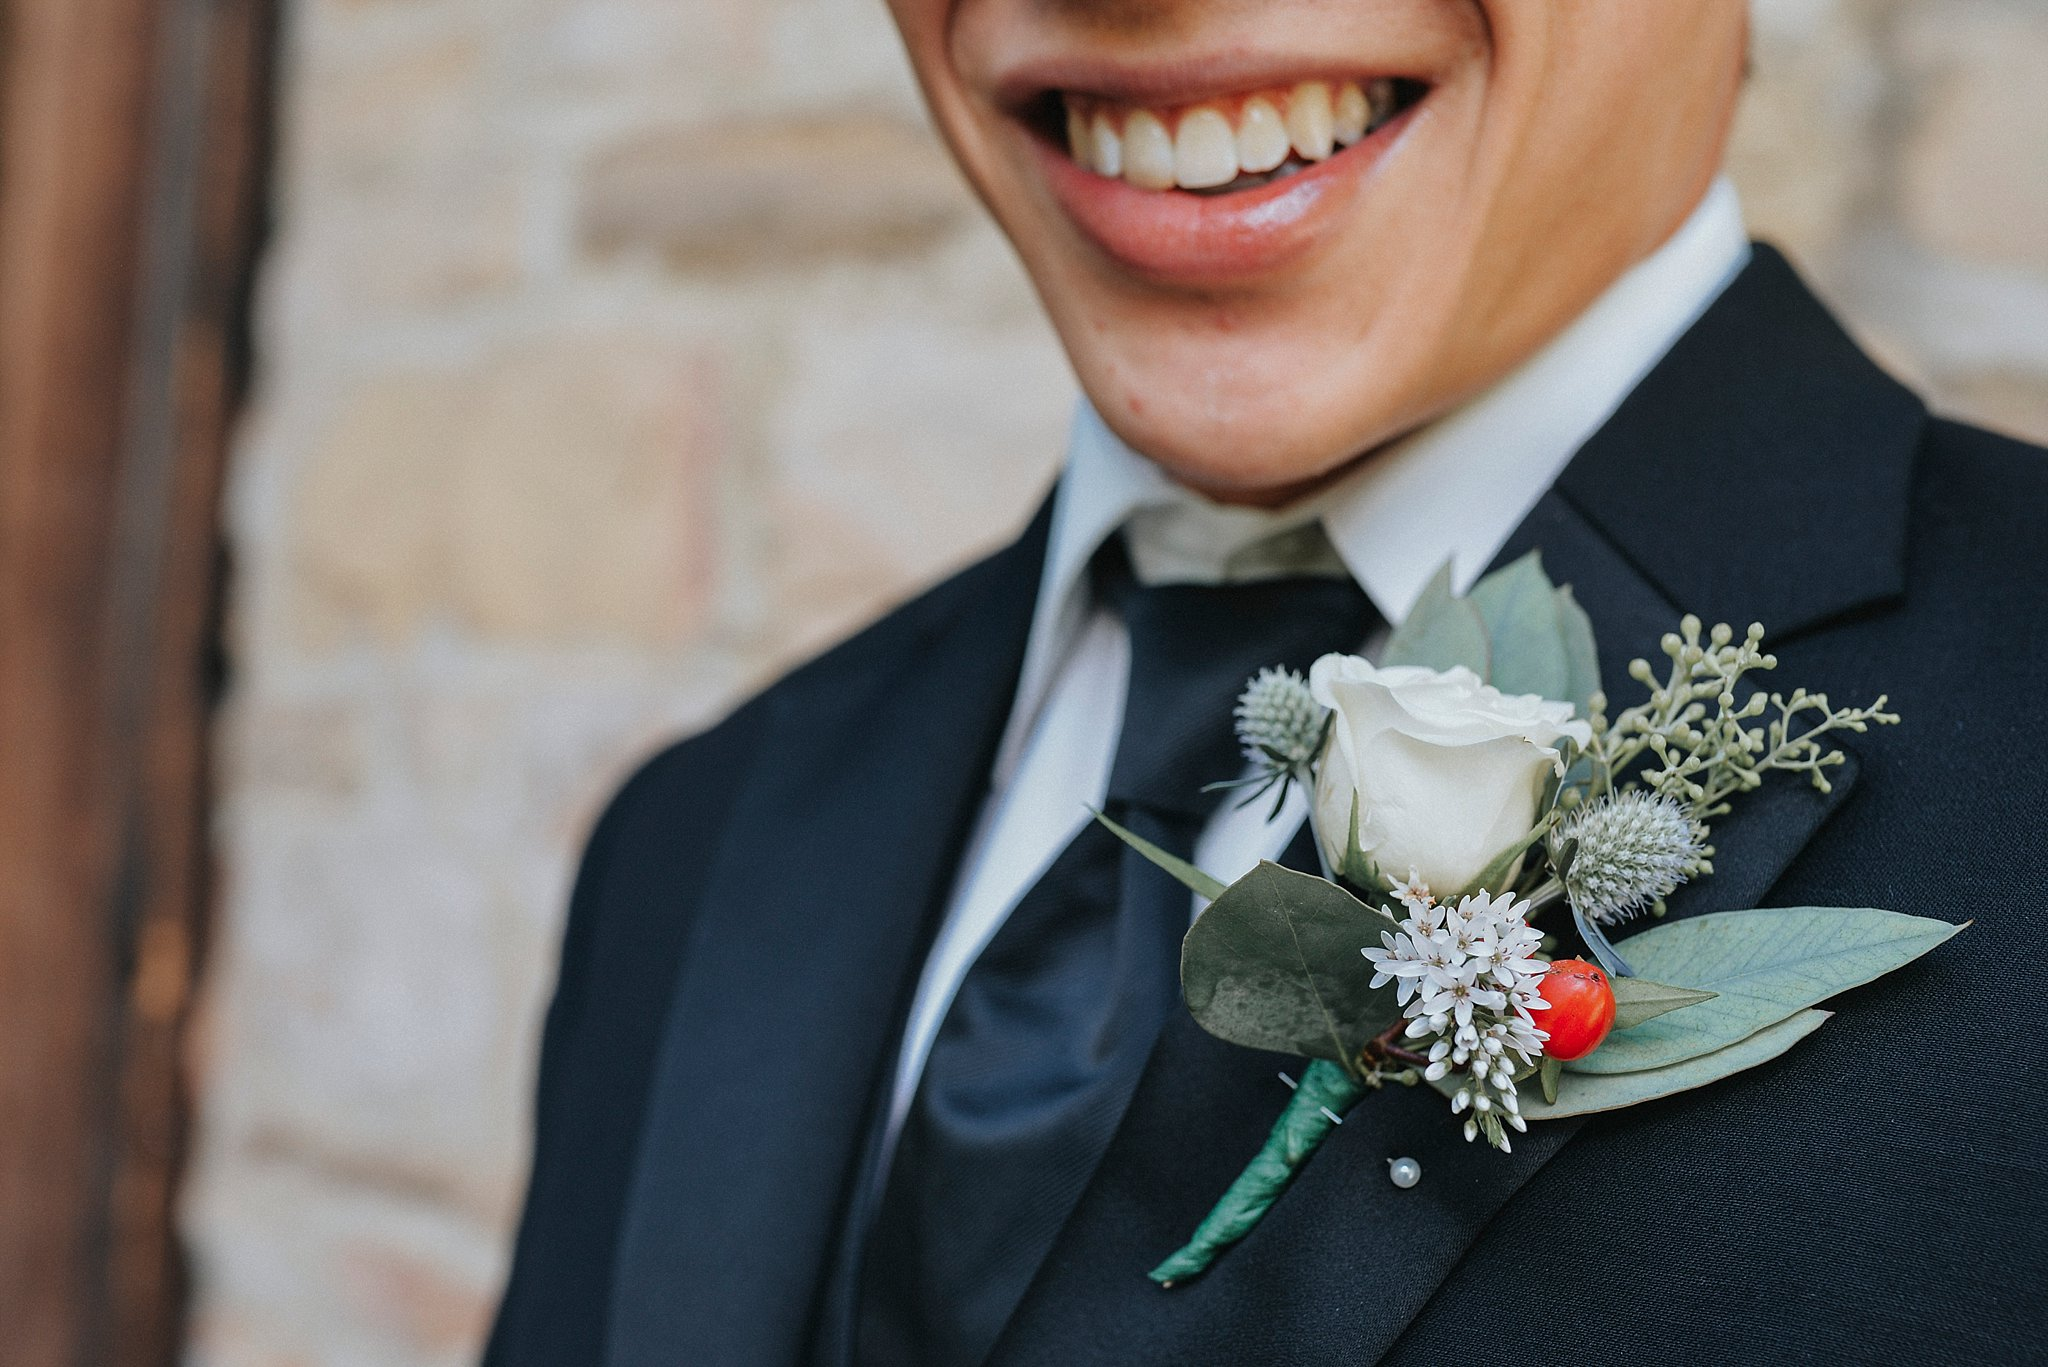 Groom coursage